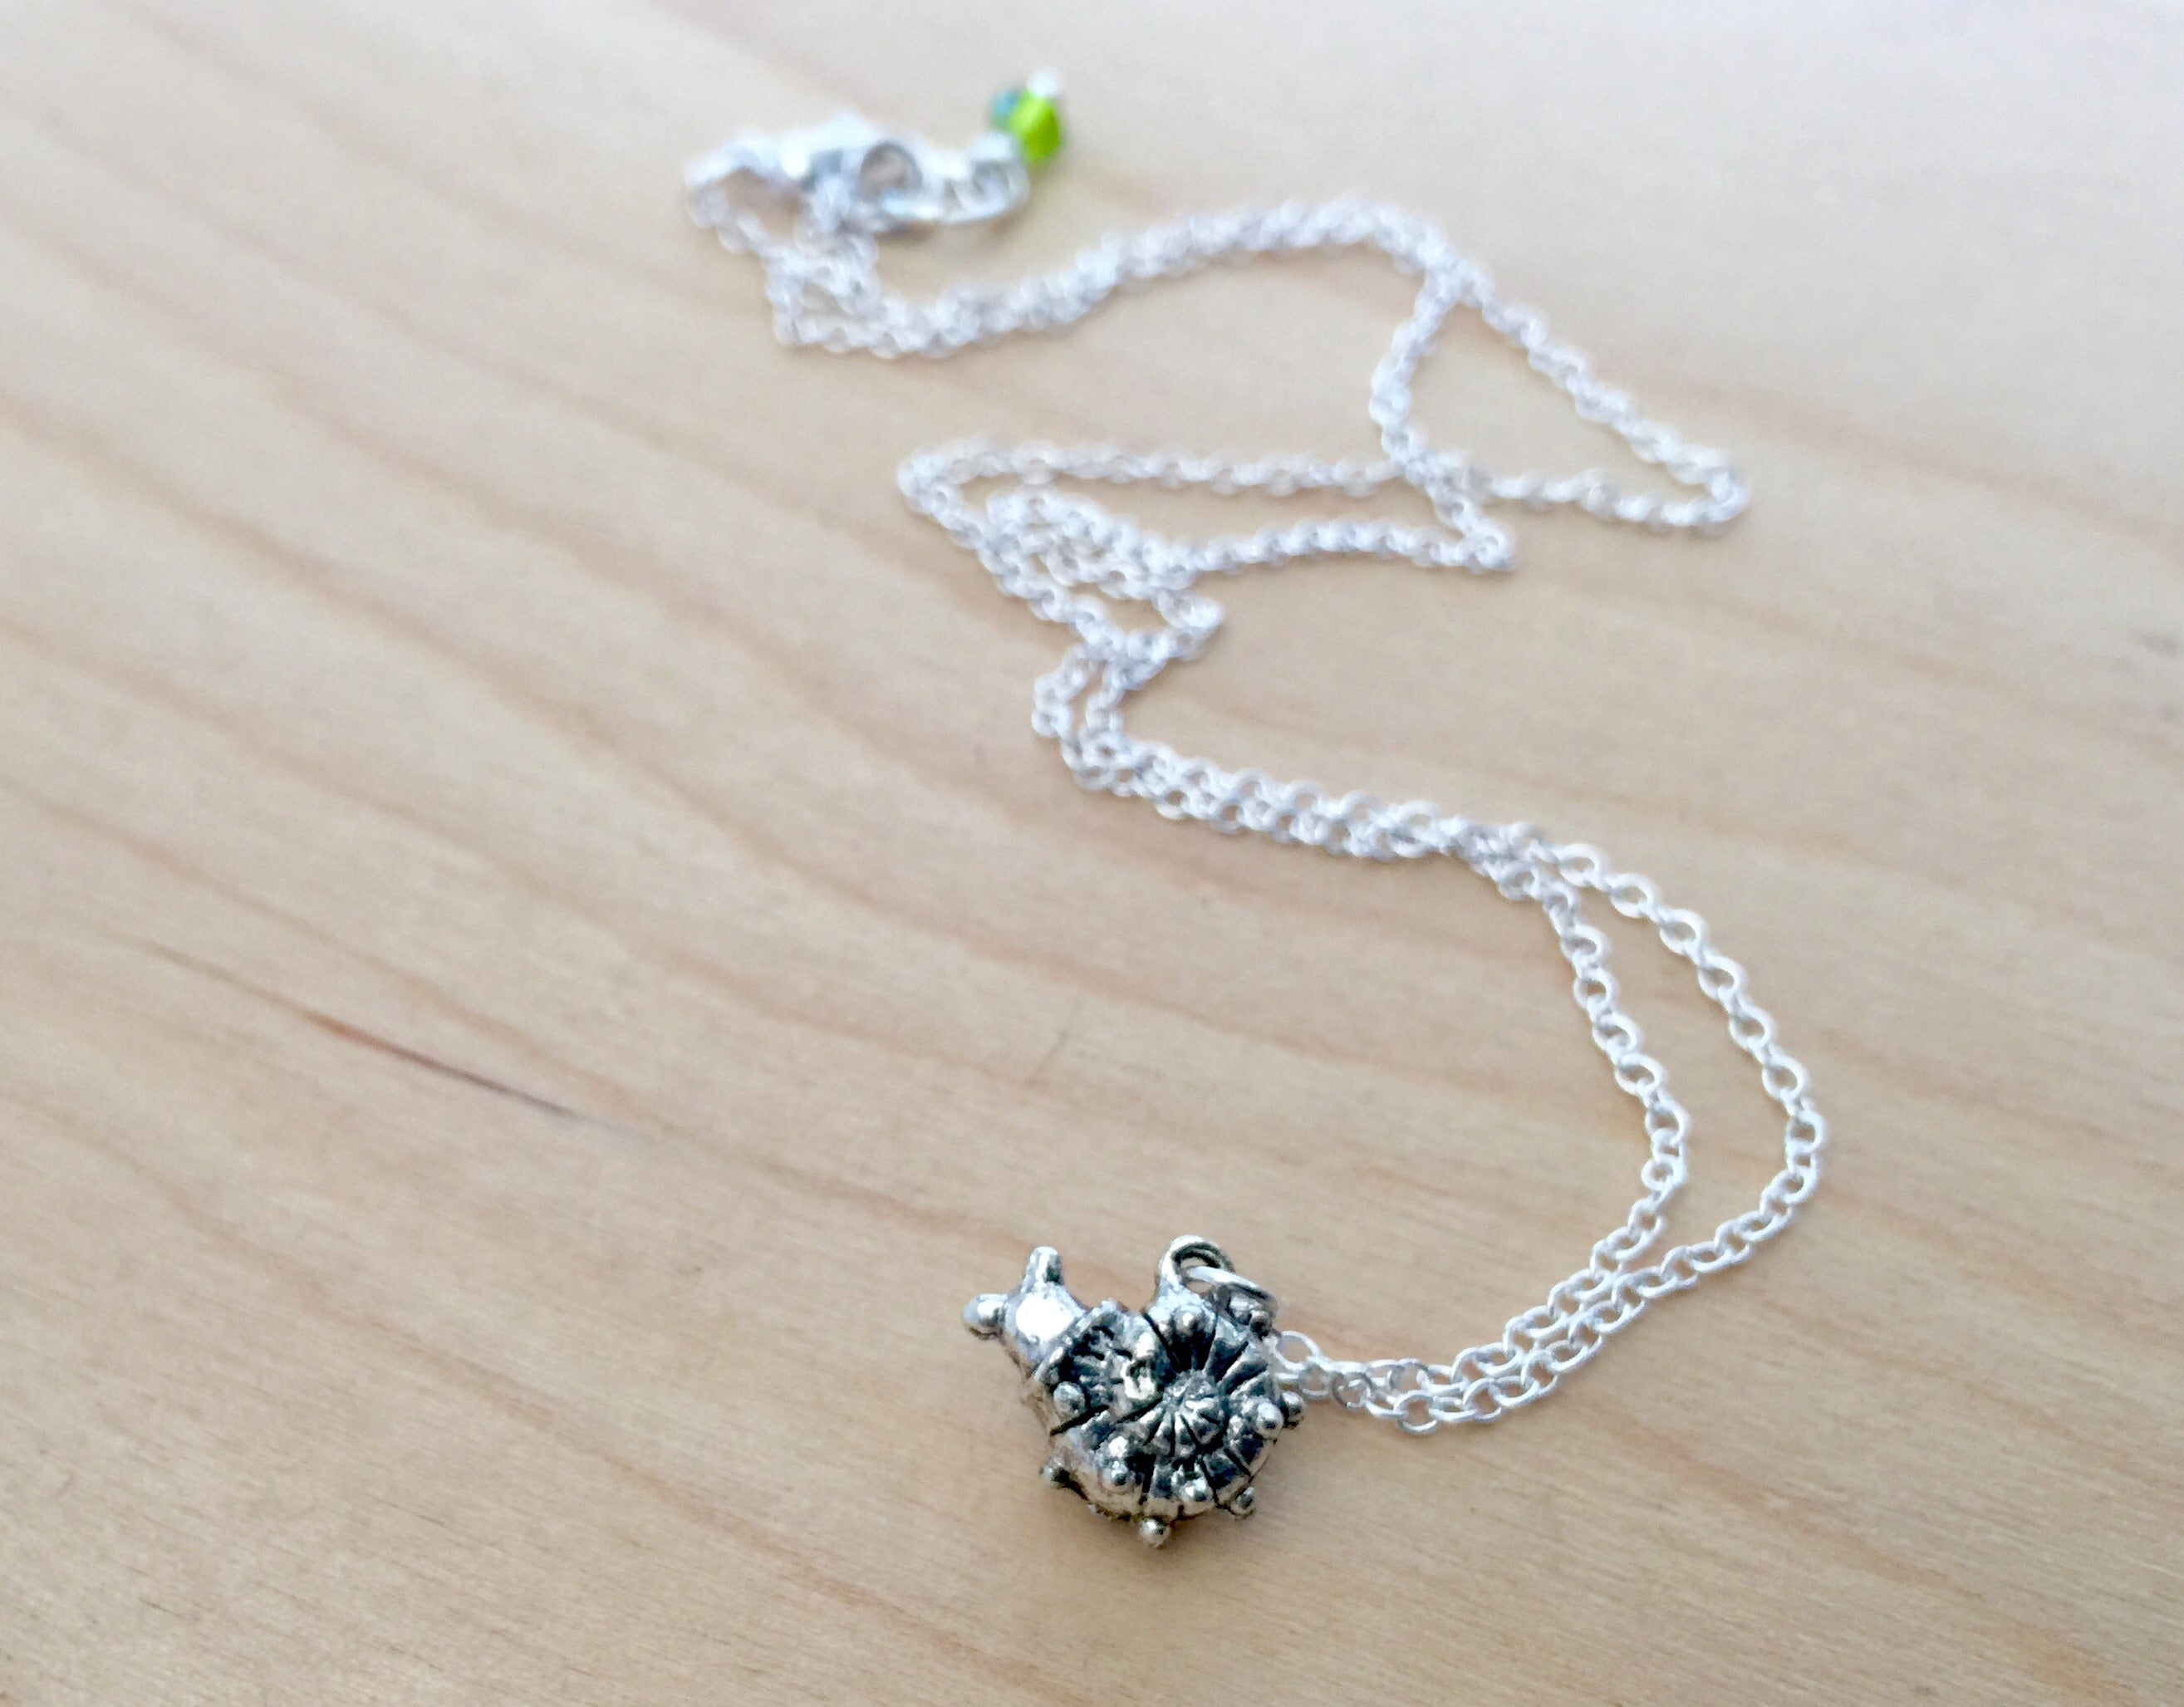 real queen Anne/'s lace necklace with glass charm enchanted fairy garden necklace Tiny forest terrarium resin pendant necklace